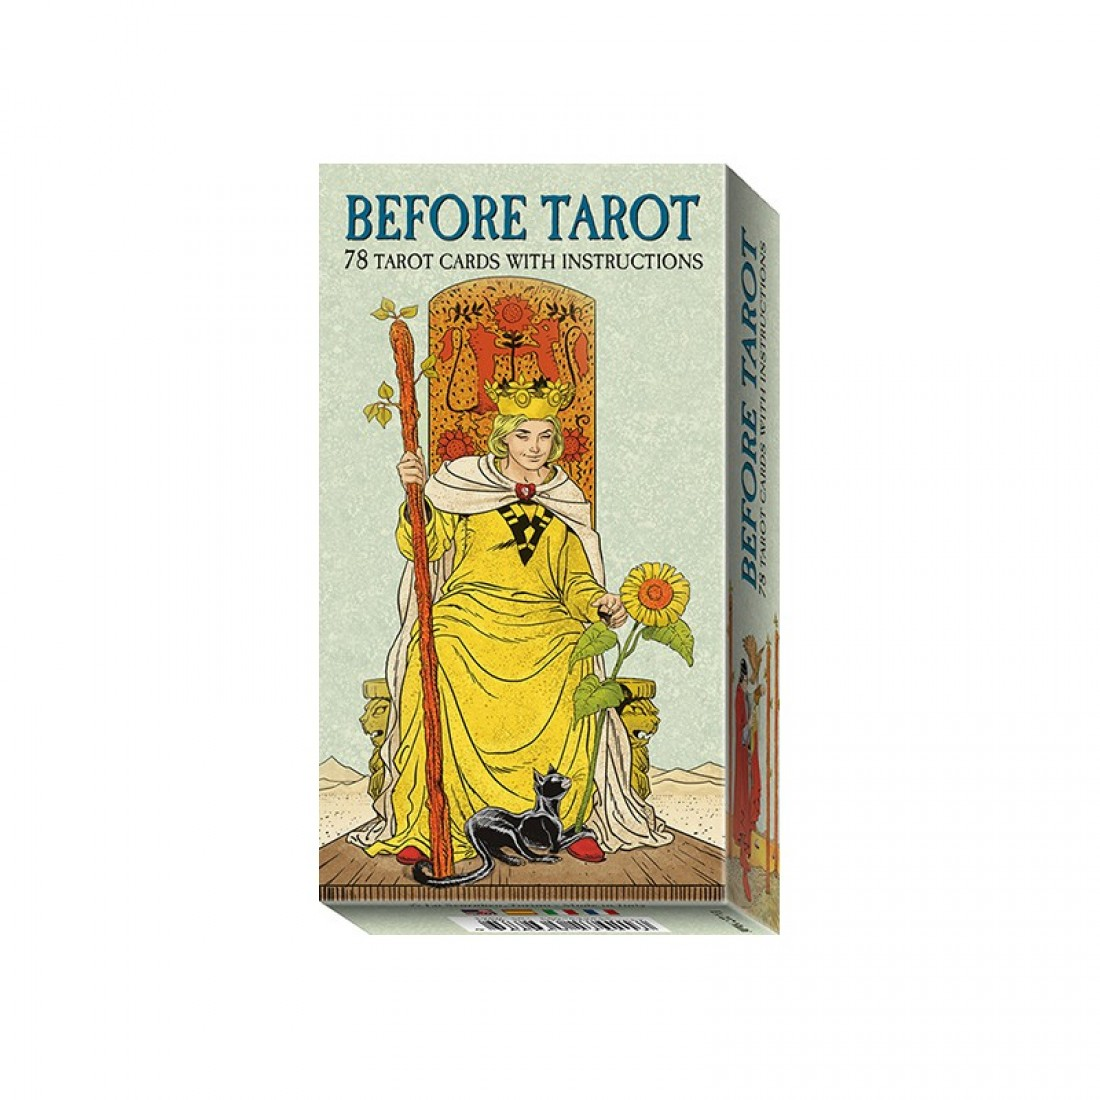 9788865275290 Before Tarot Deck_1